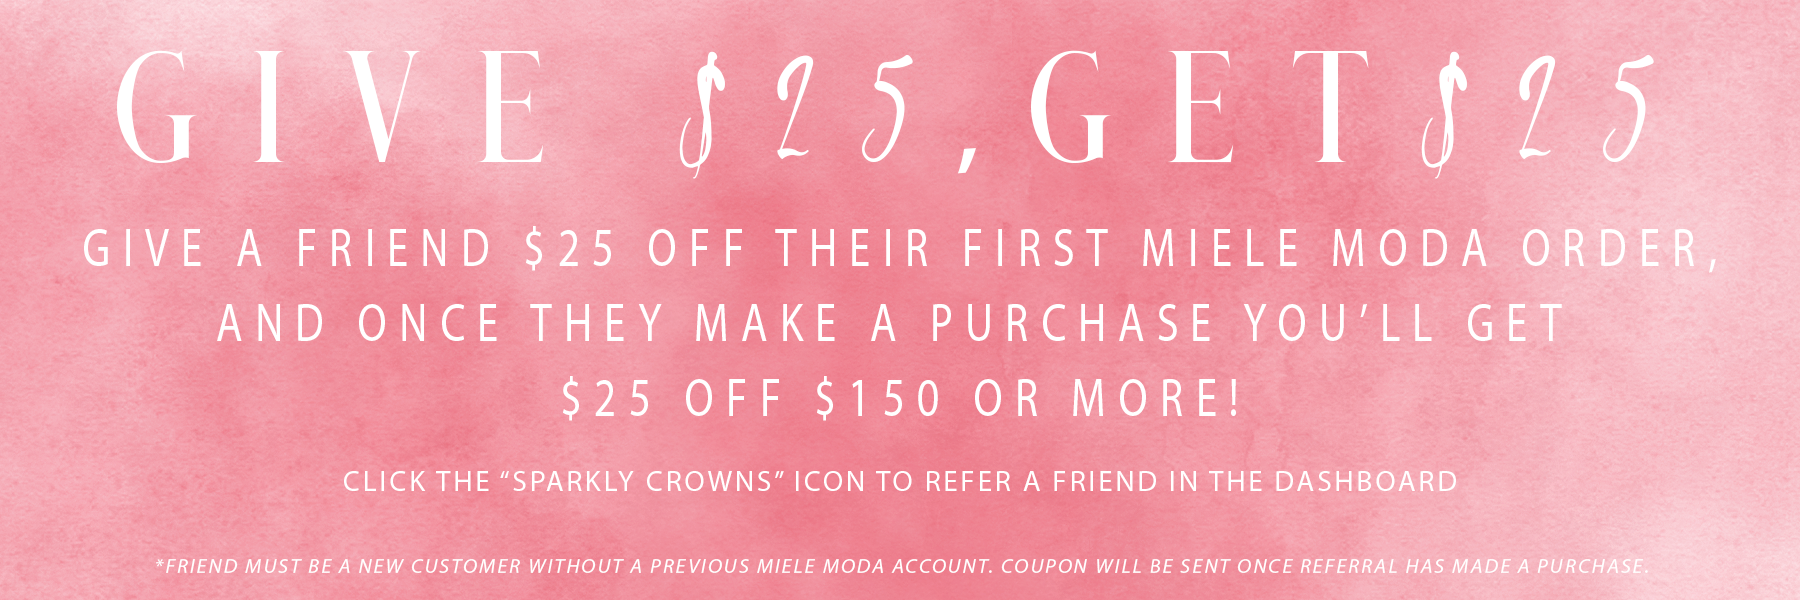 sparkly crowns rewards banner give $25 get $25 for miele moda boutique